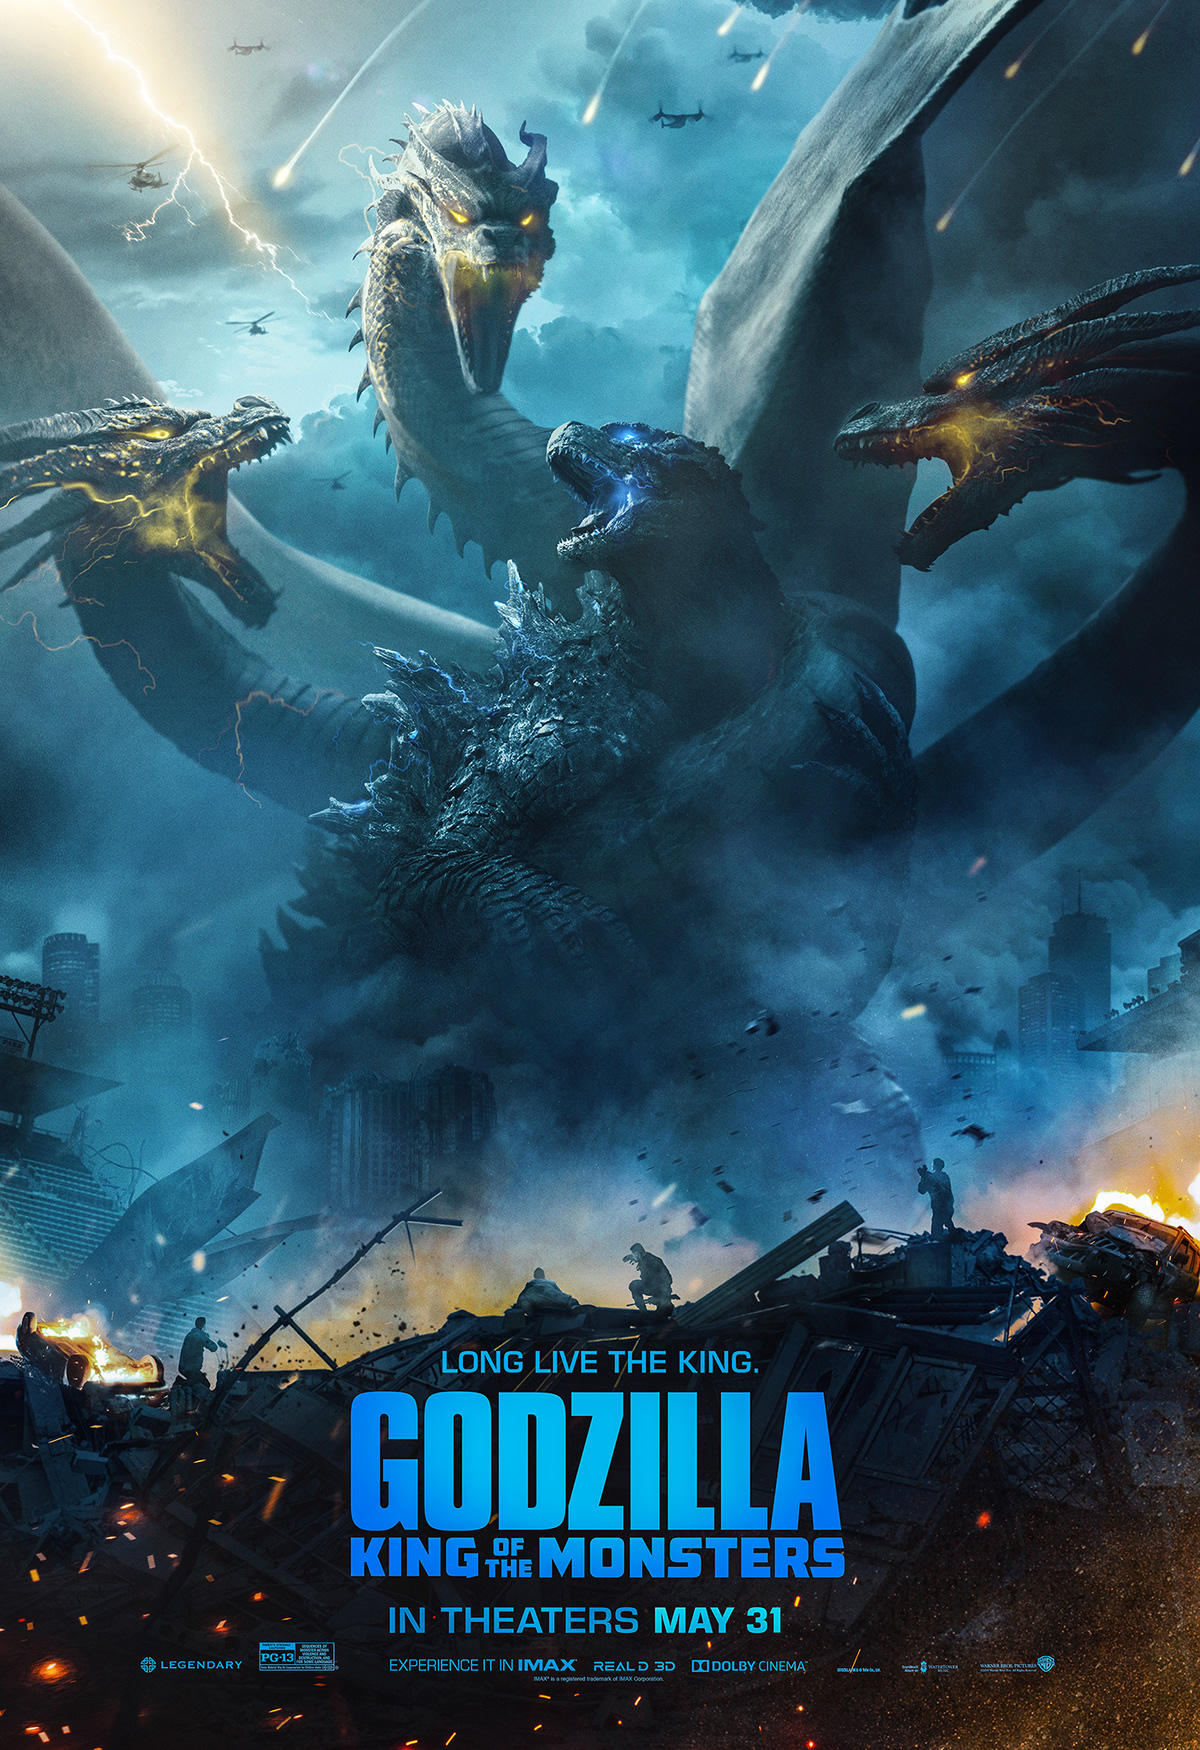 GODZILLA: King of the Monsters on Behance